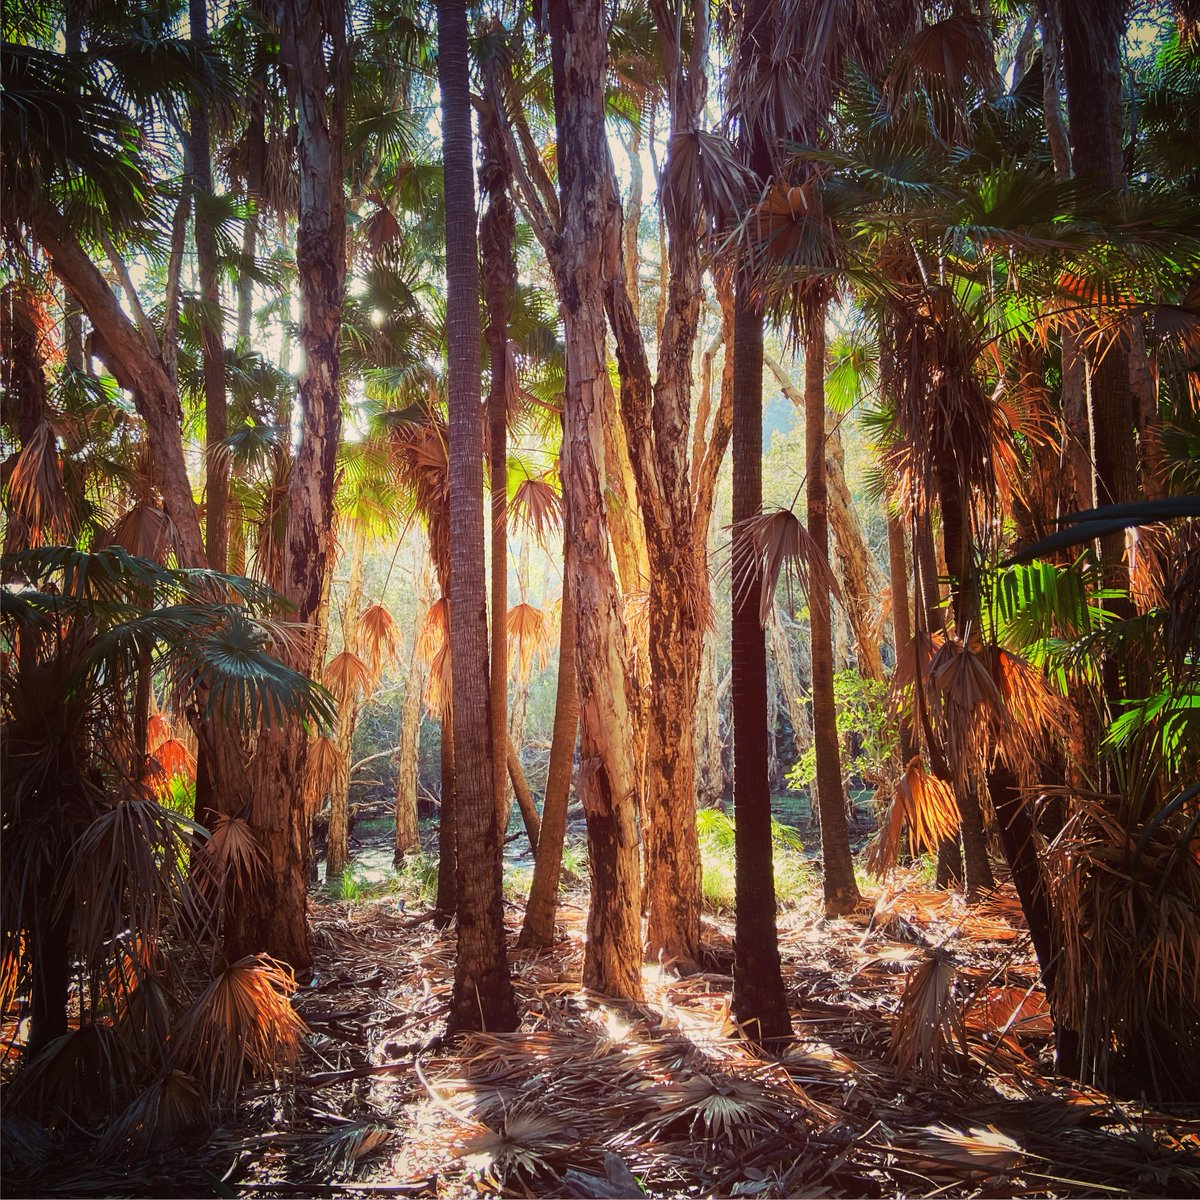 Littoral rainforest in the golden light of late afternoon. Arakoon, NSW, Australia   http://www.reddit.com/r/EarthPorn/comments/hj1aqp/littoral_rainforest_in_the_golden_light_of_late/ … pic.twitter.com/JnlqLBV2US  by Head Outdoors